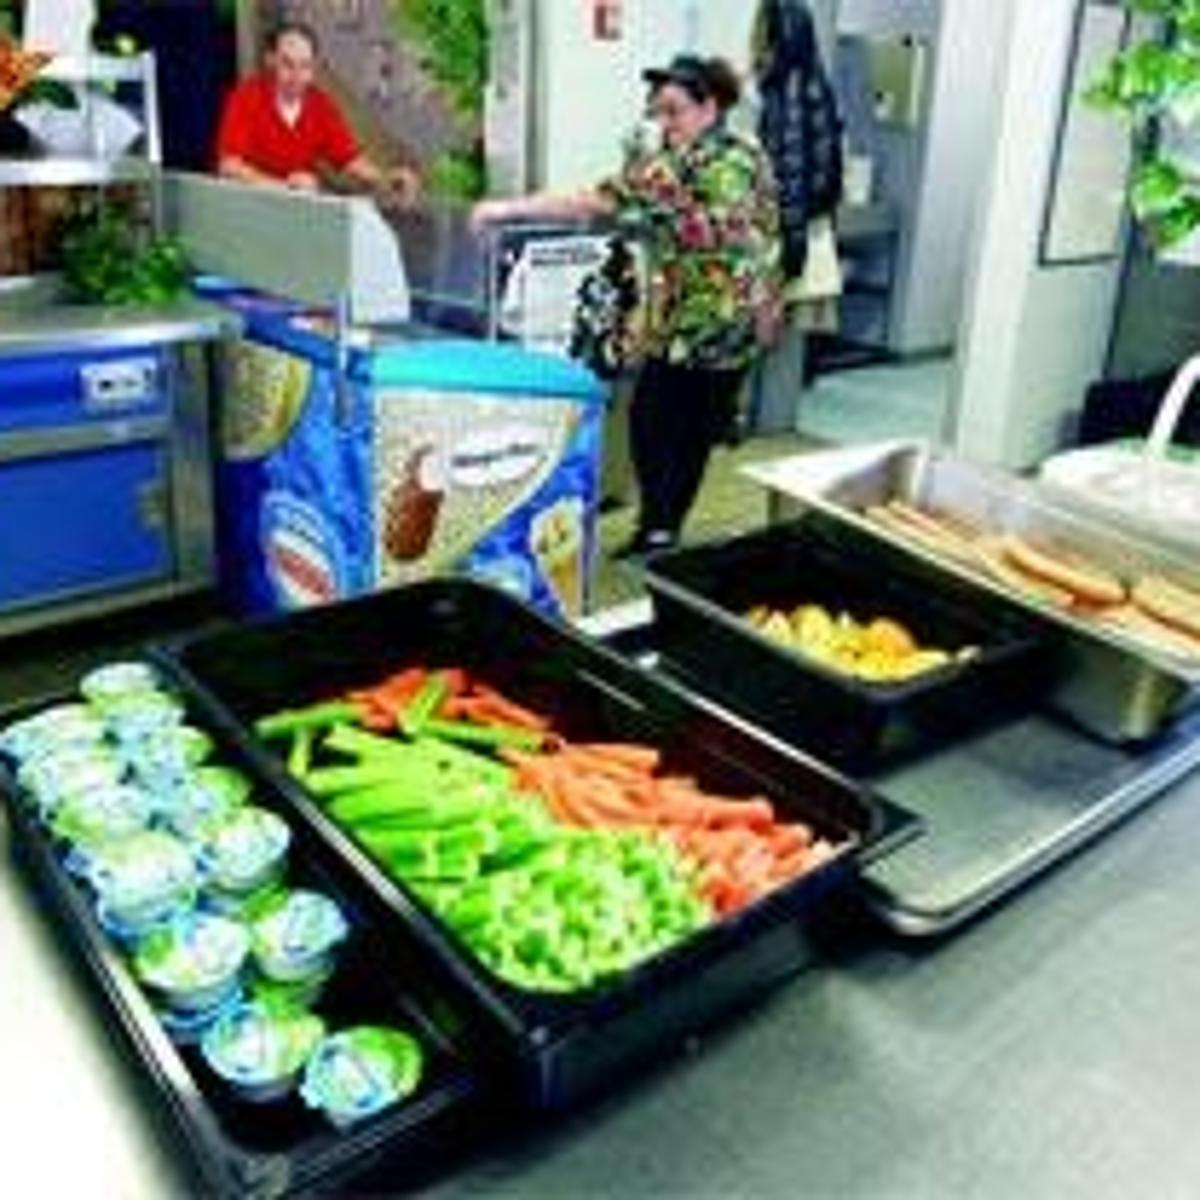 More say 'no' to junk food in school cafeterias | News